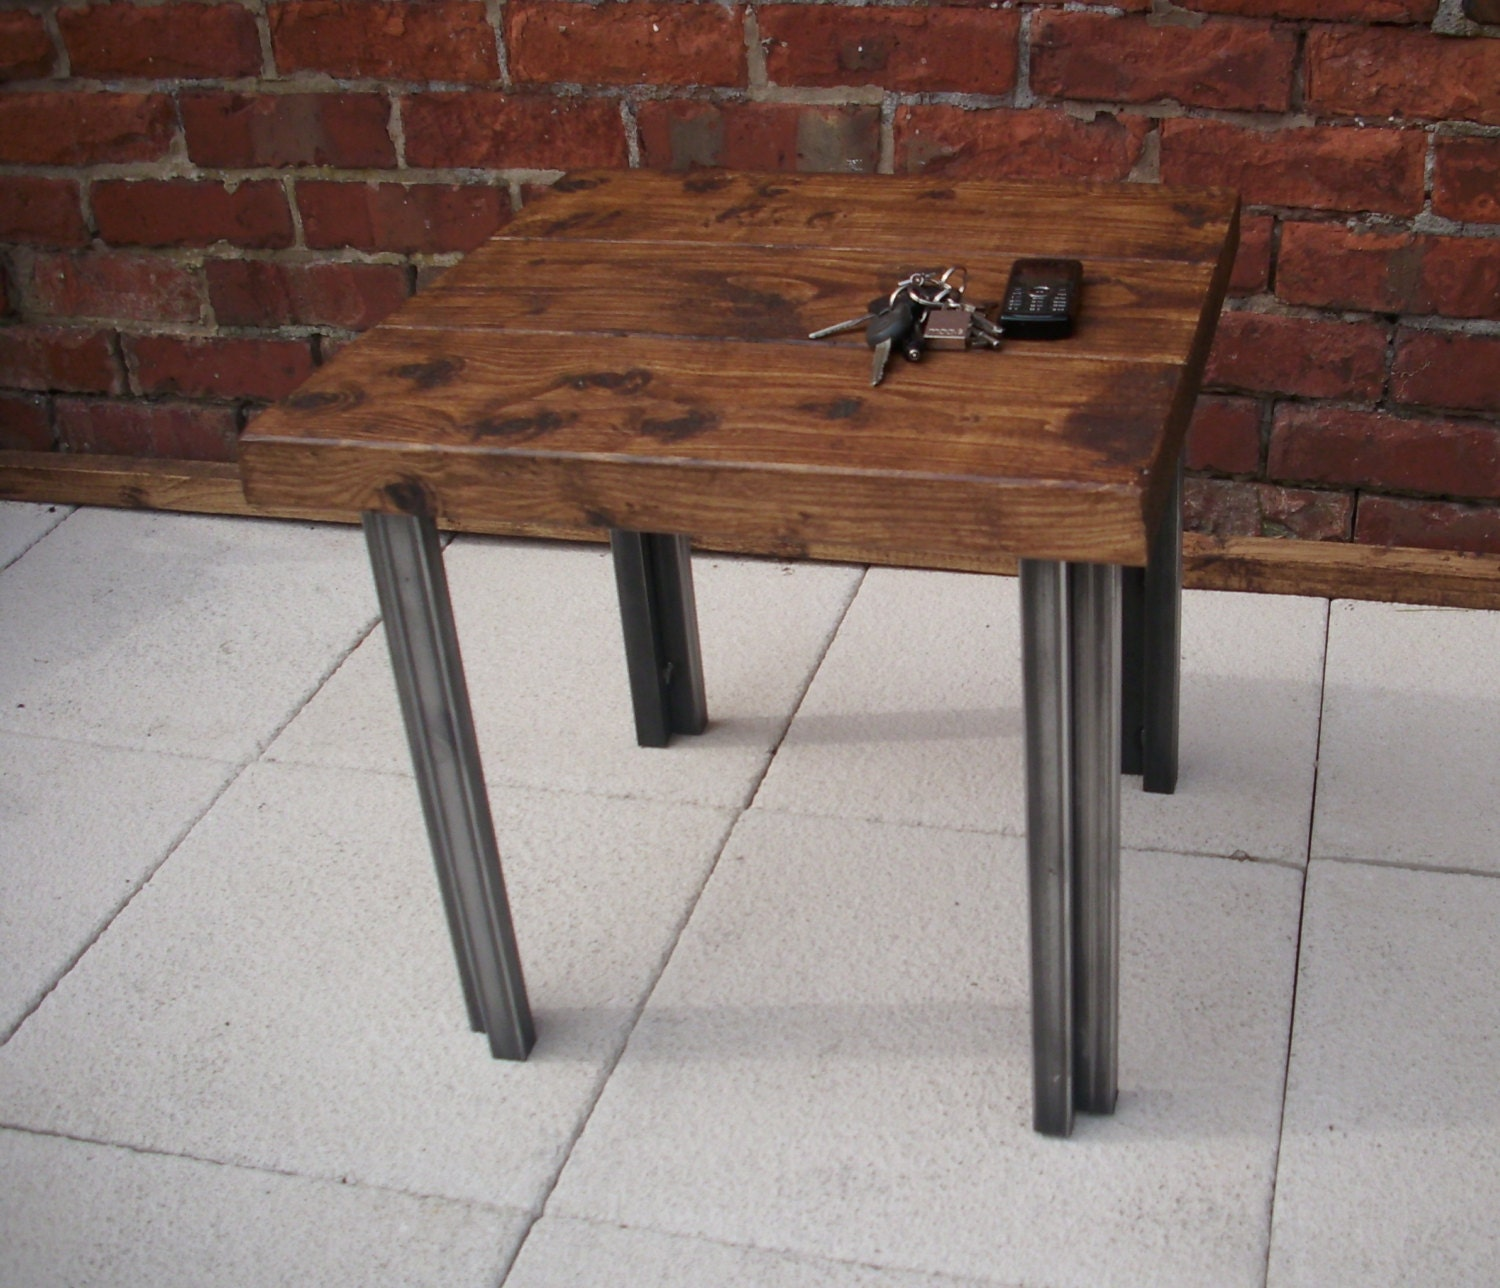 Square Coffee Table Styling: Square Industrial Style Rustic Coffee Table By